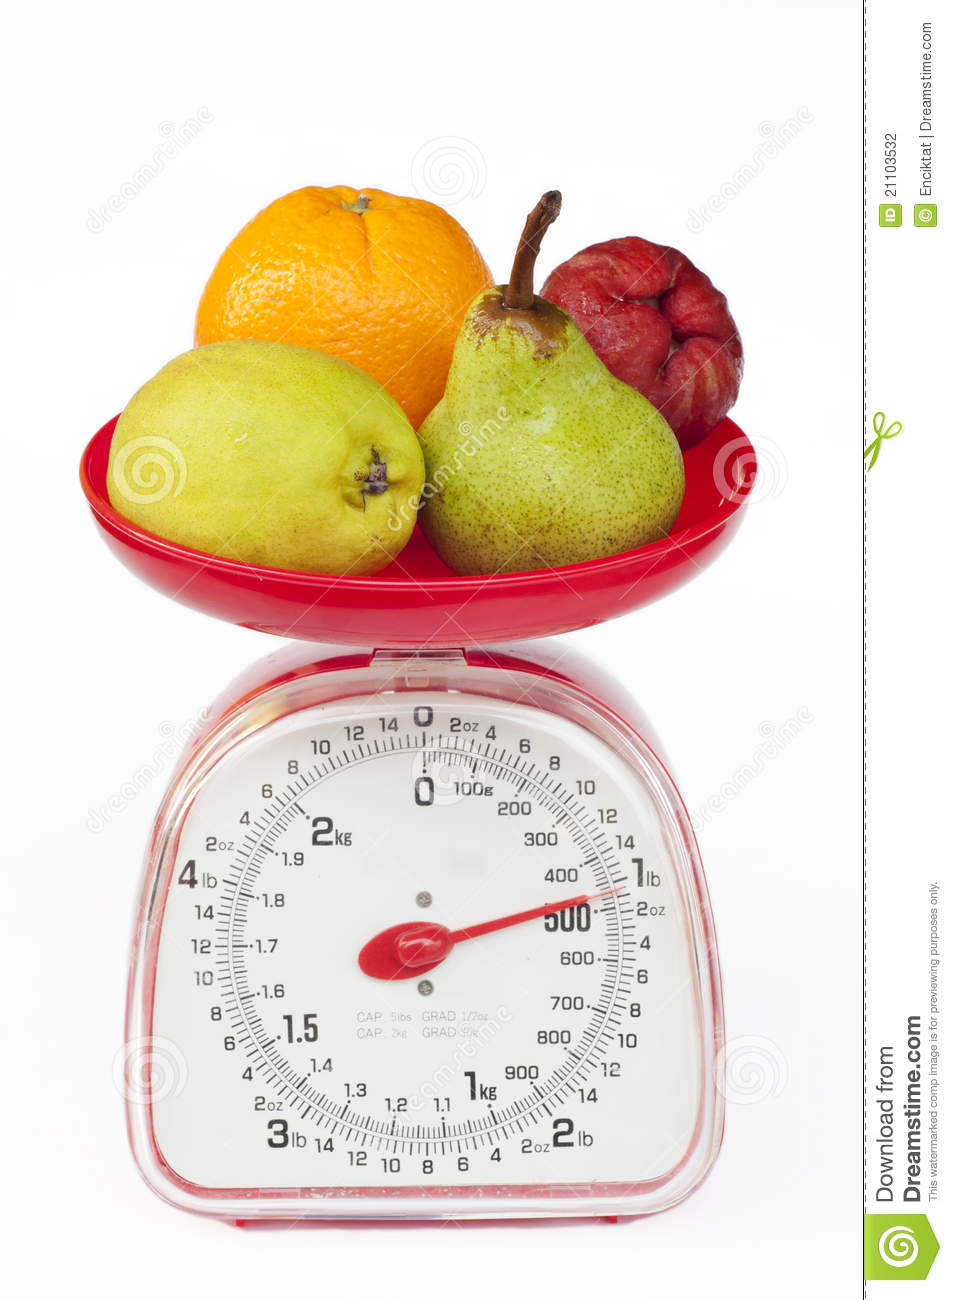 Kitchen Weight Scale With Diversity Fruit Stock